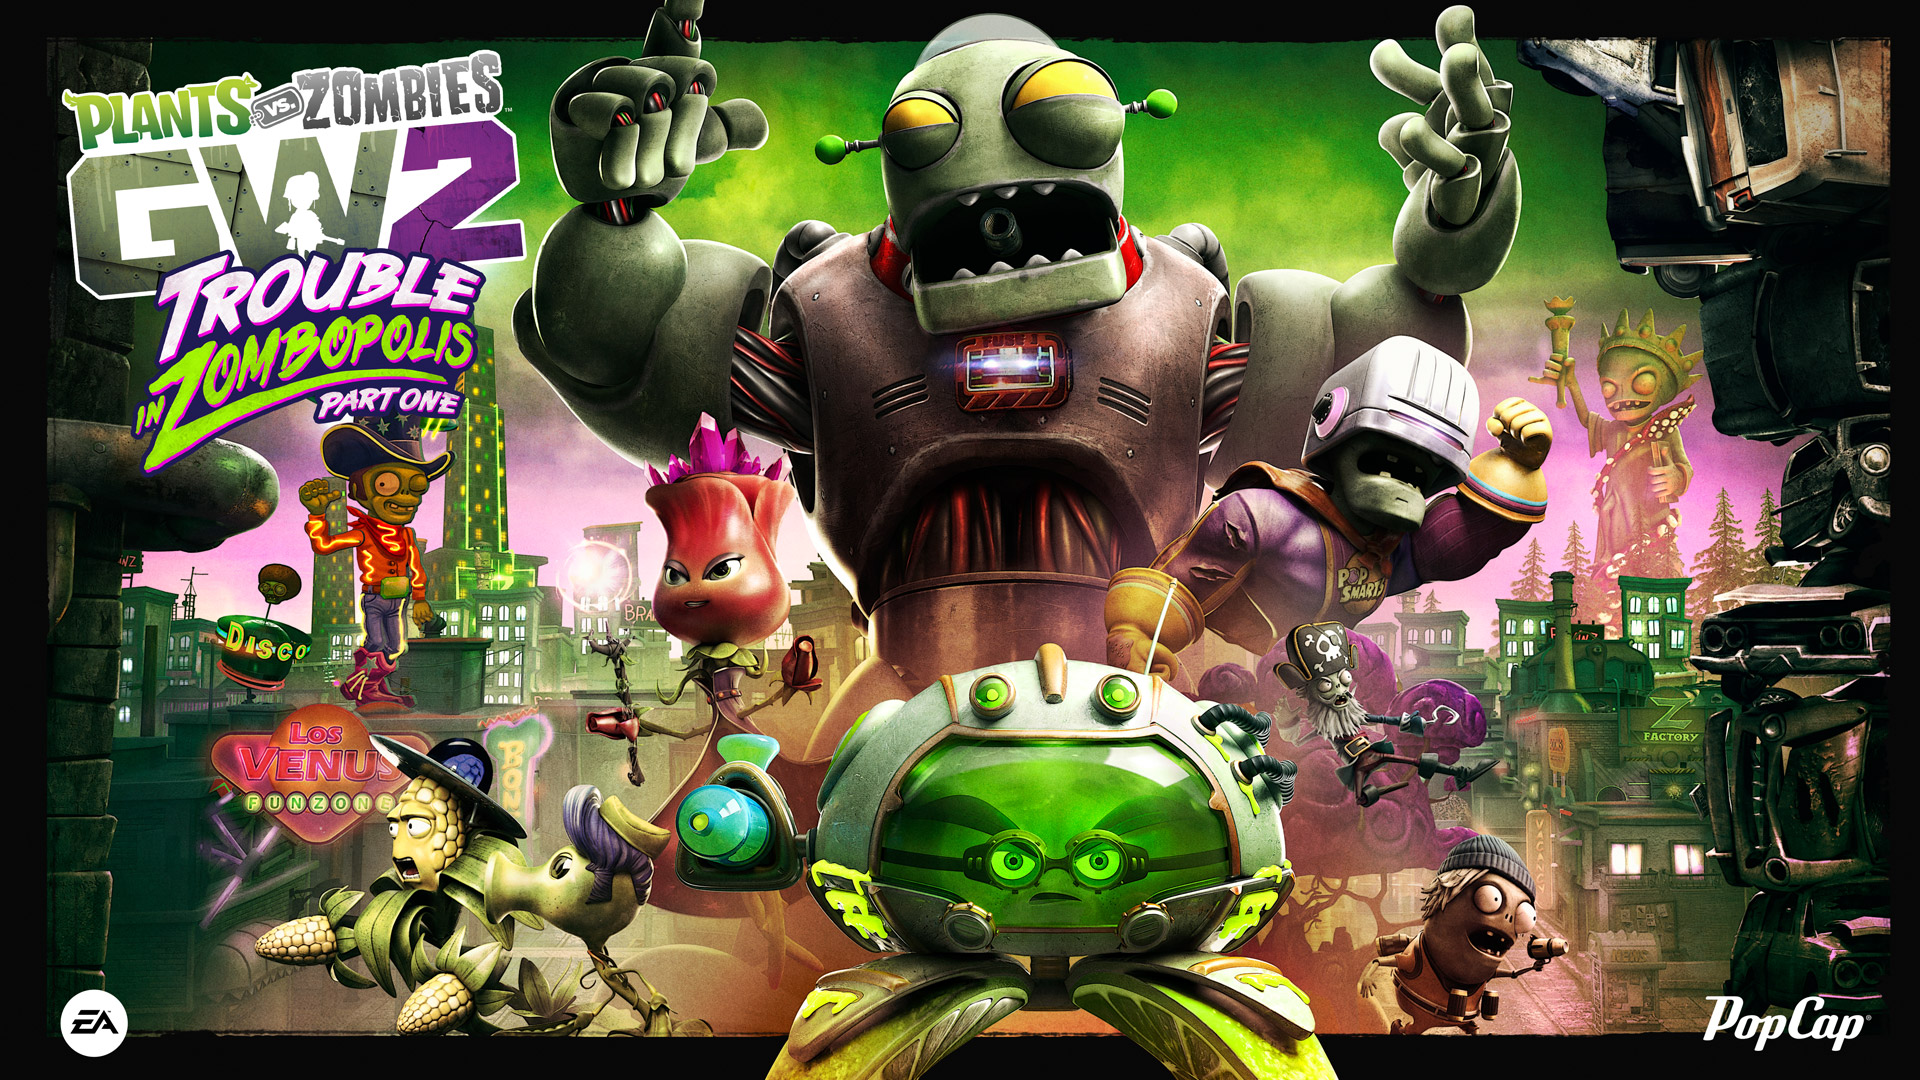 New Content Announced For Plants vs. Zombies Garden Warfare 2